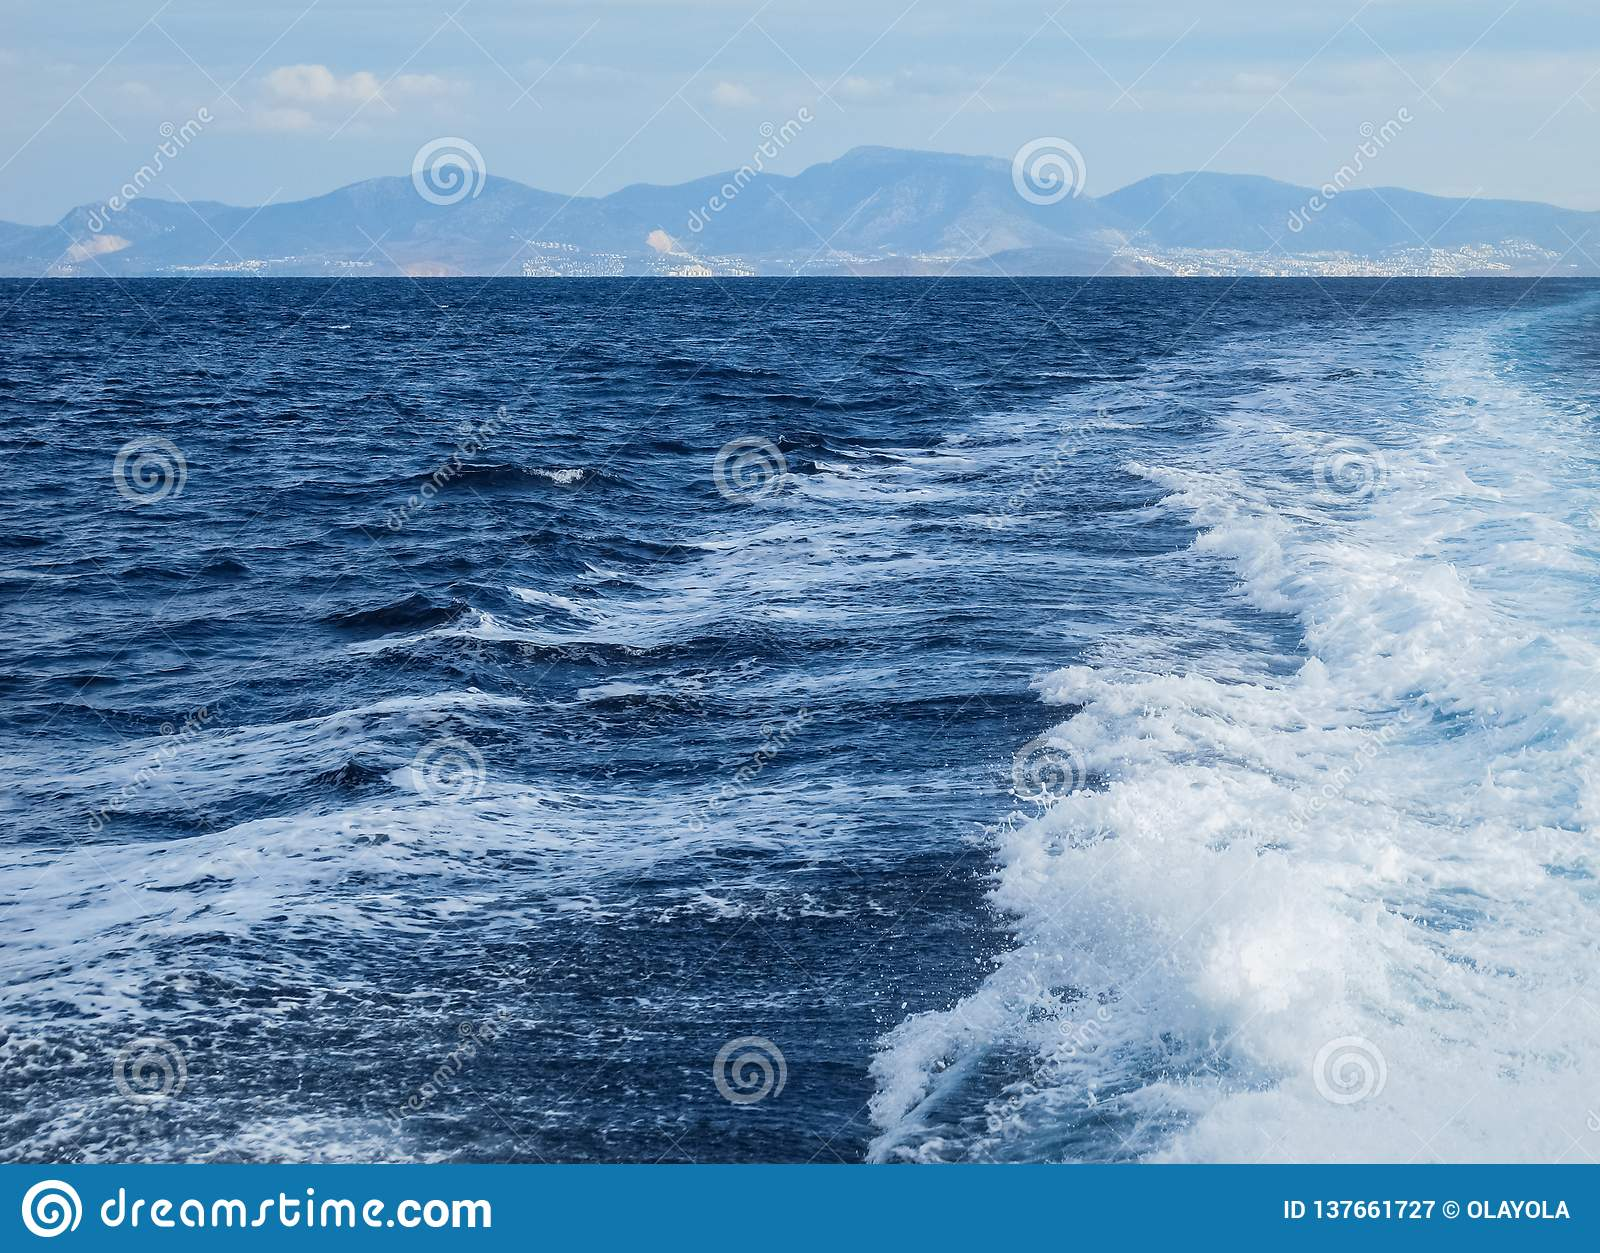 The waves and foam from a boat in a bright summer day. Islands and mountains in the background. Summer vacation